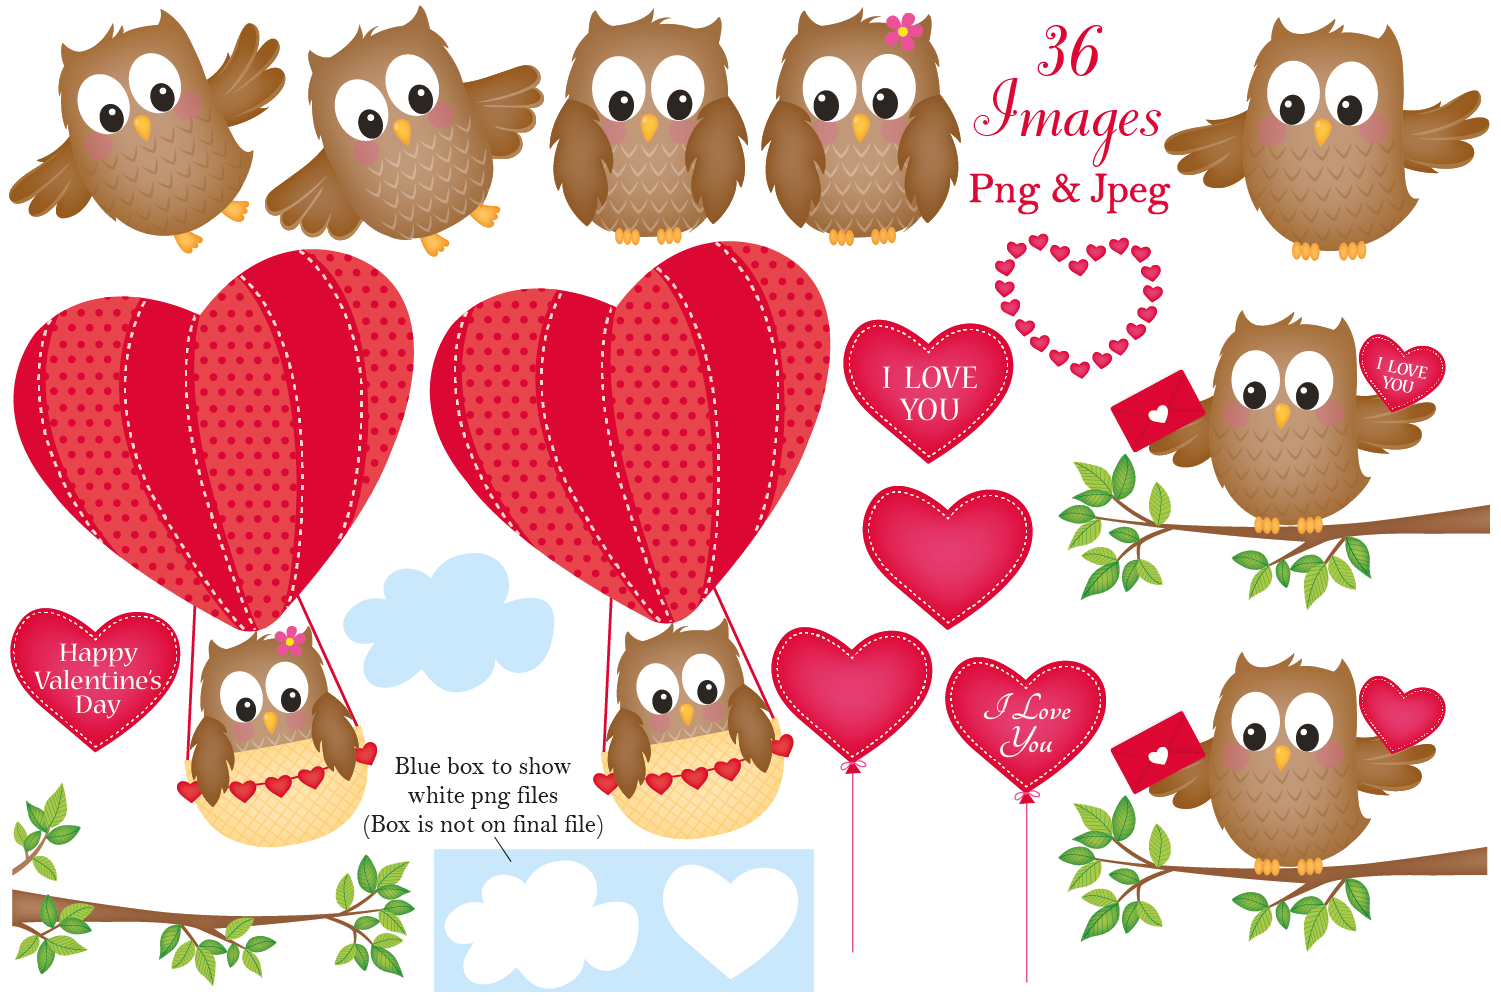 Valentine owls pictures clipart clip royalty free library Valentine clipart, Owls, Valentine graphics & illustrations clip royalty free library